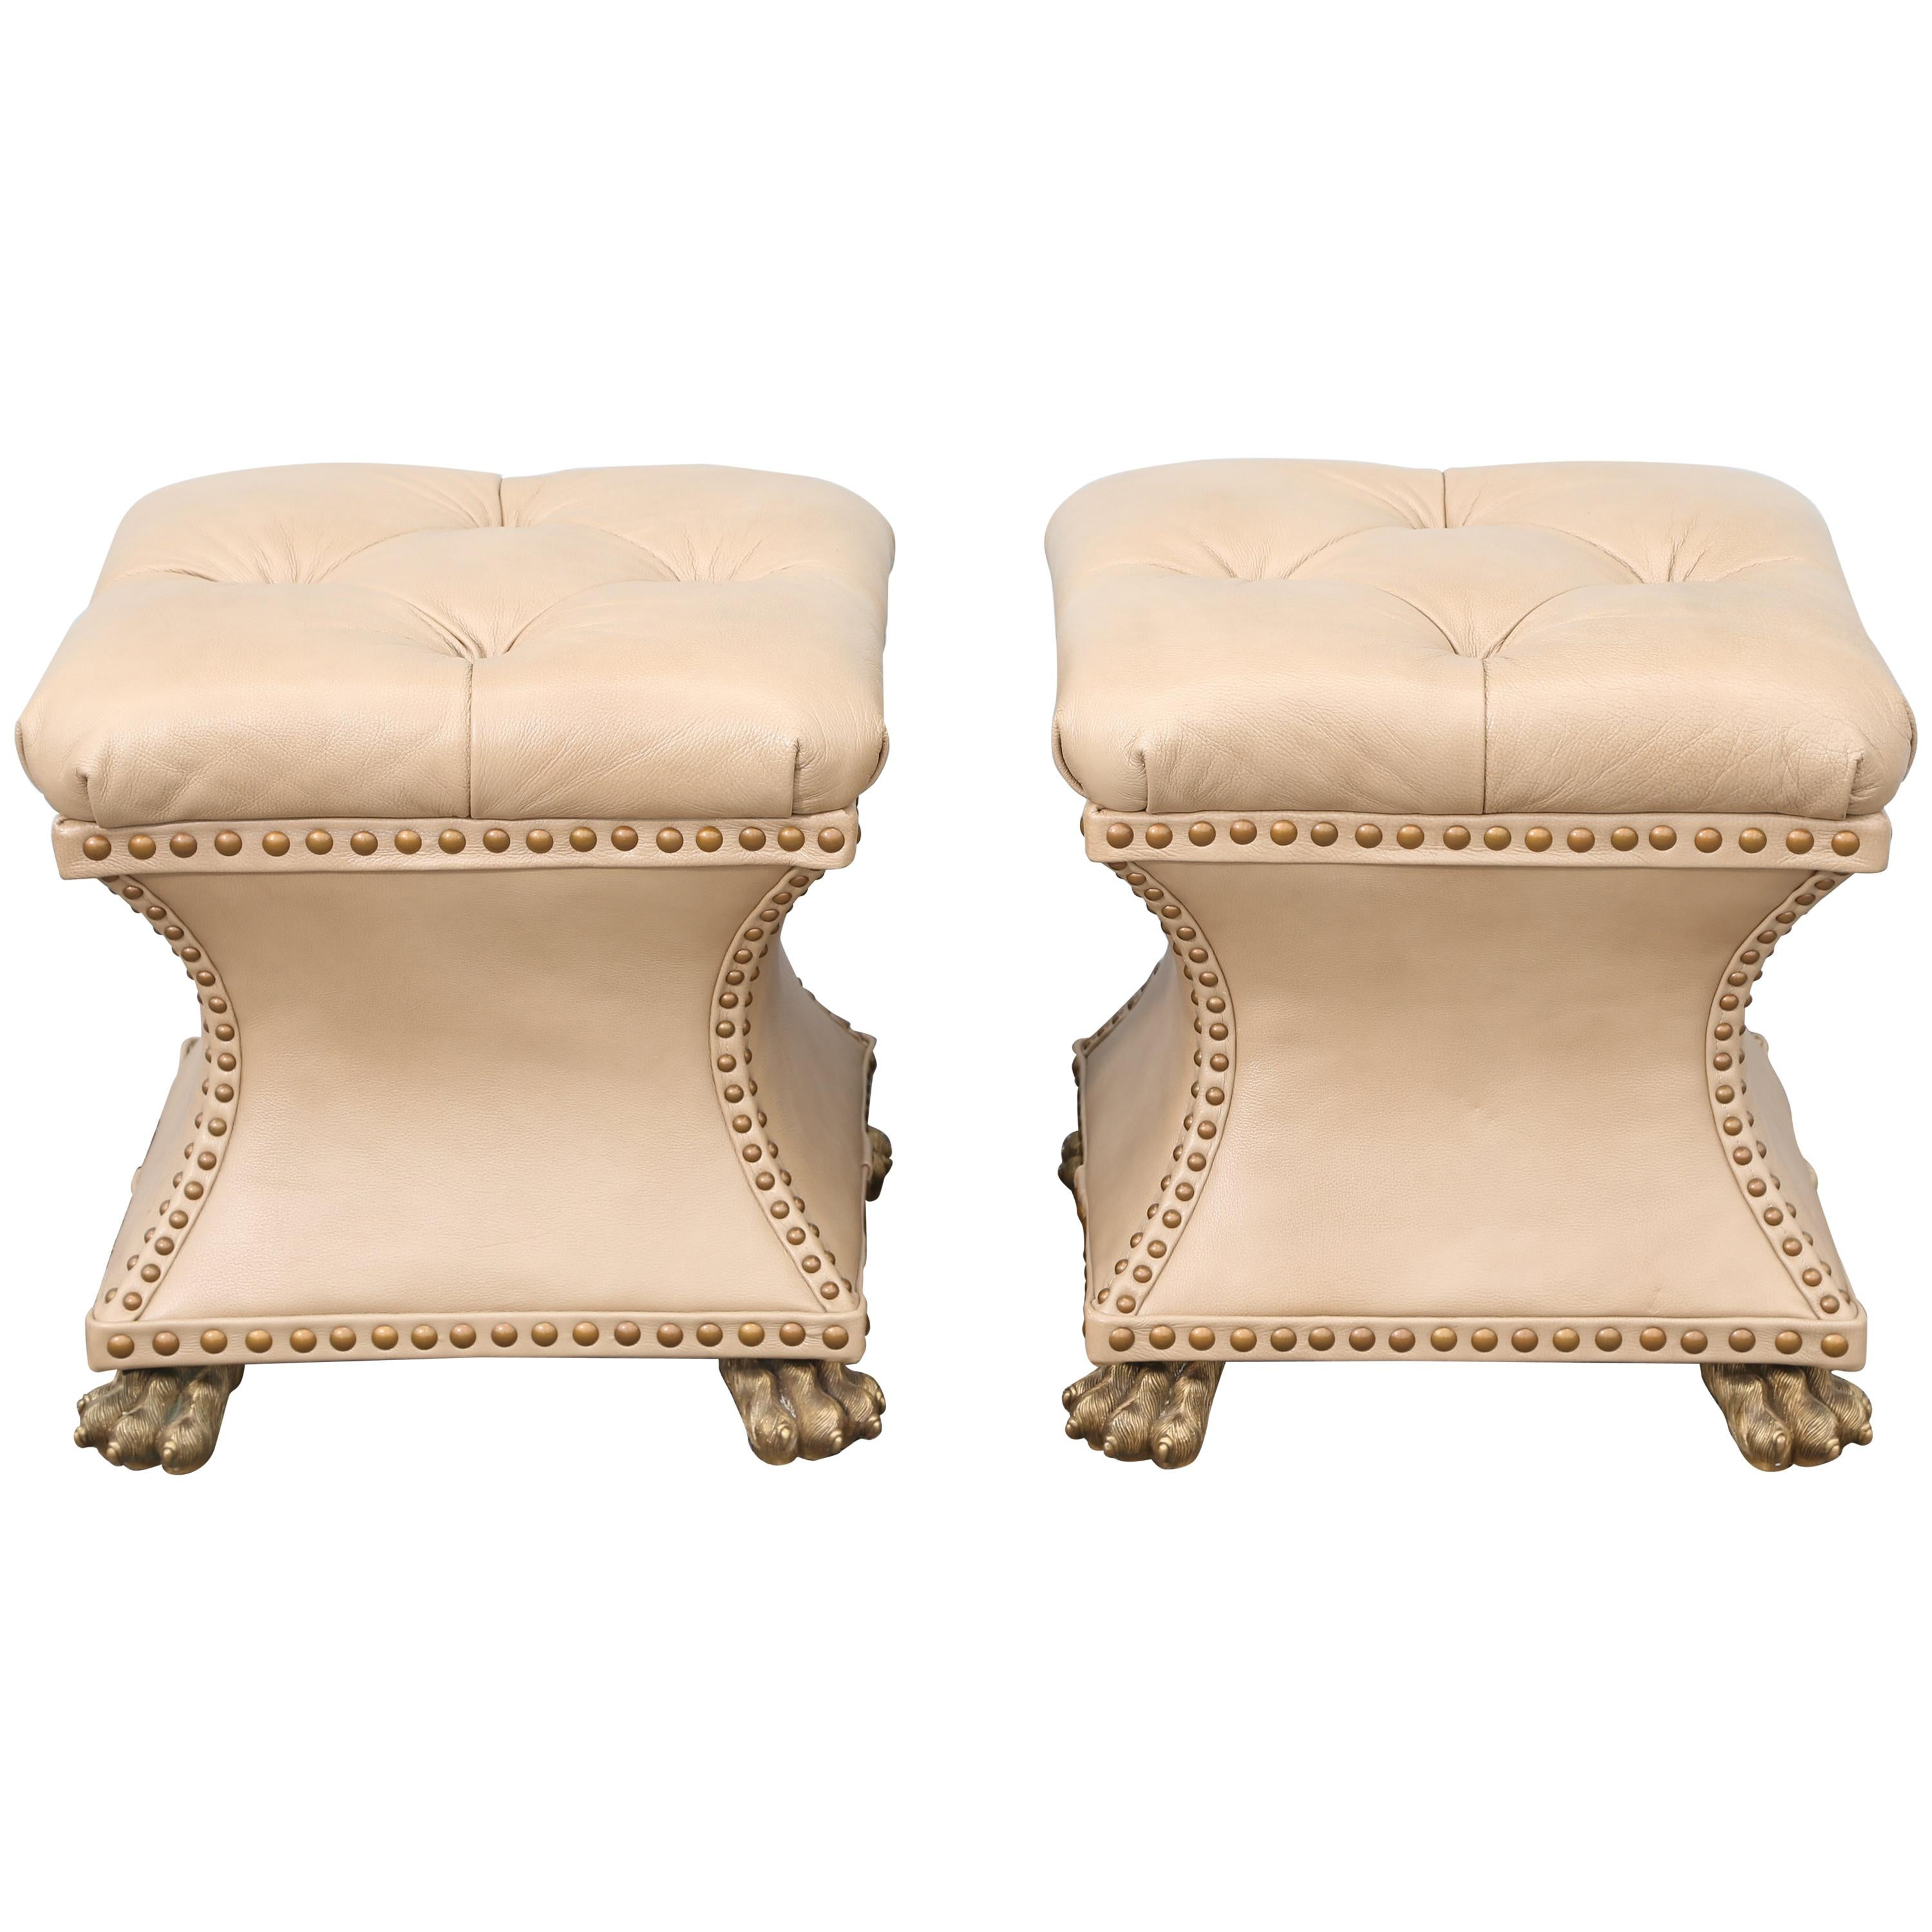 Pair of Tufted Leather Ottomans